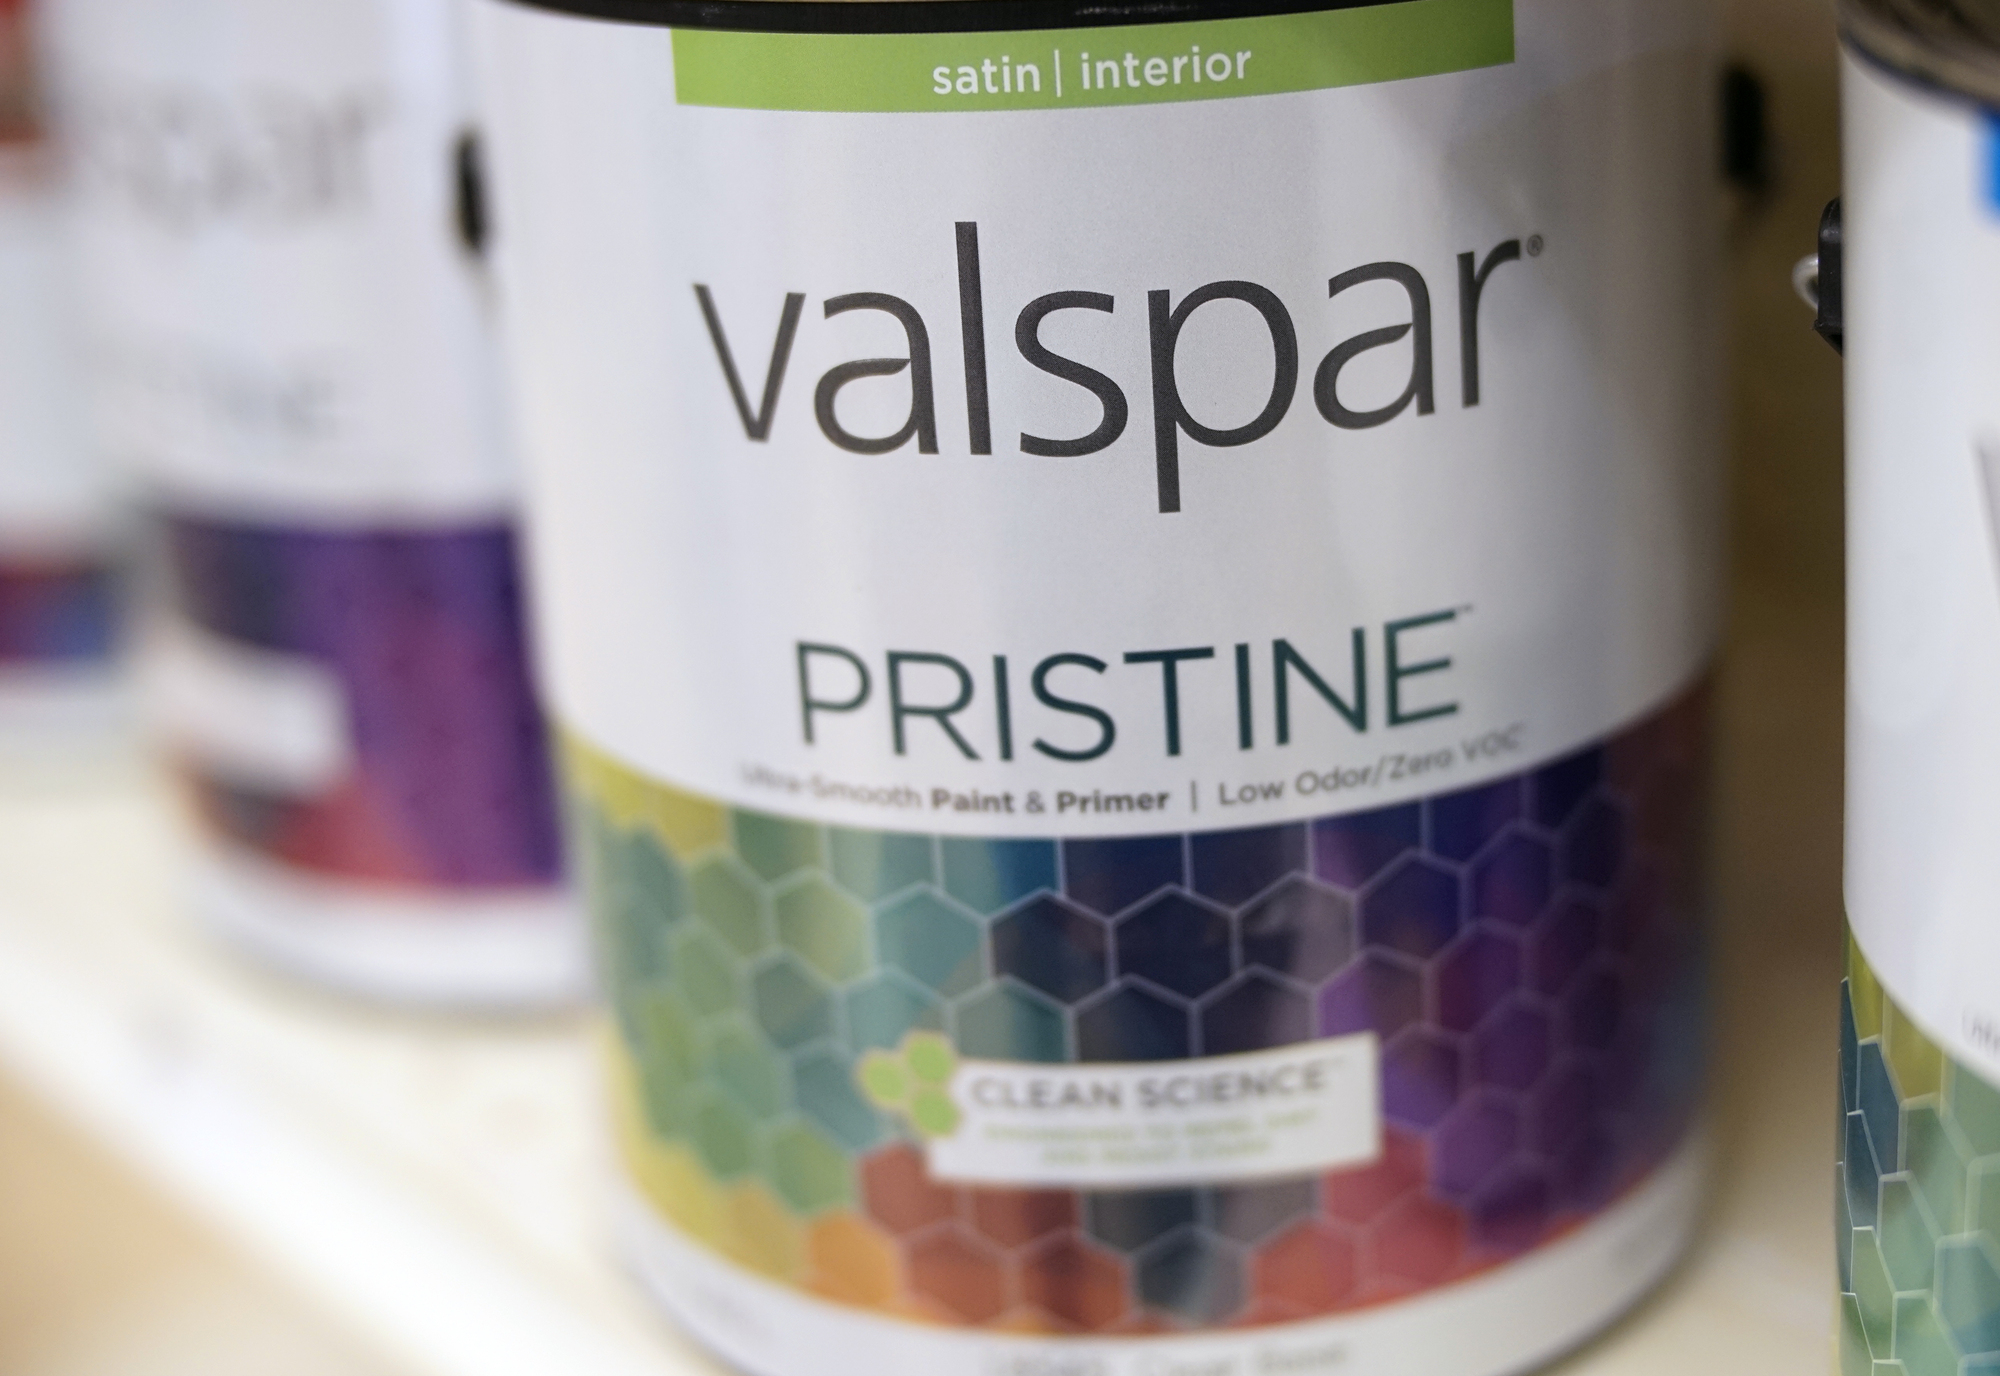 Nice Valspar Paint to Make Your Home Look Beautiful: Valspar Spray Paint Review | Valspar Paint | Valspar Metallic Spray Paint